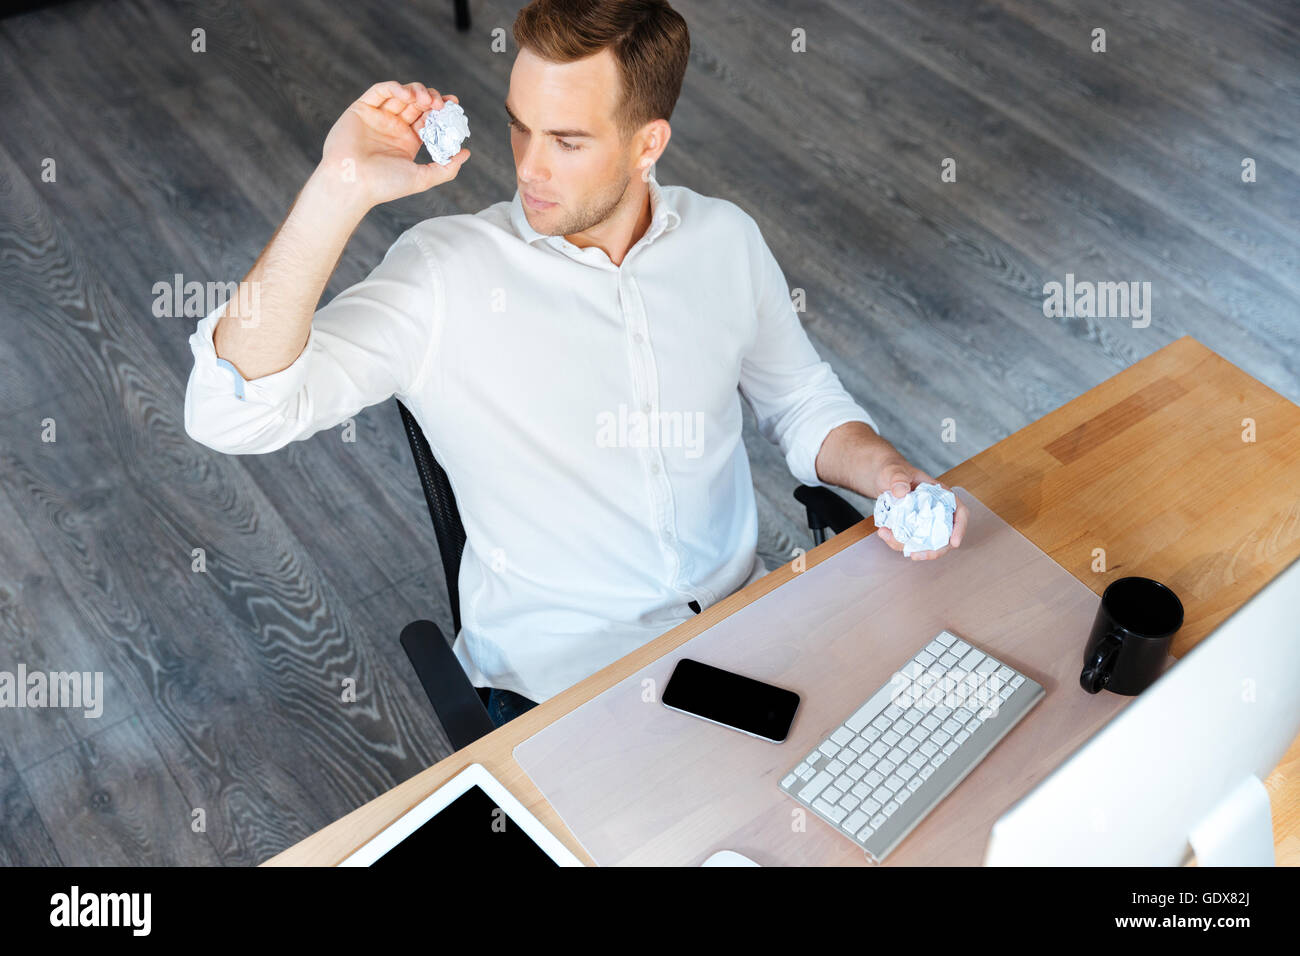 Top view of serious young businessman throwing crumpled paper and working in office - Stock Image